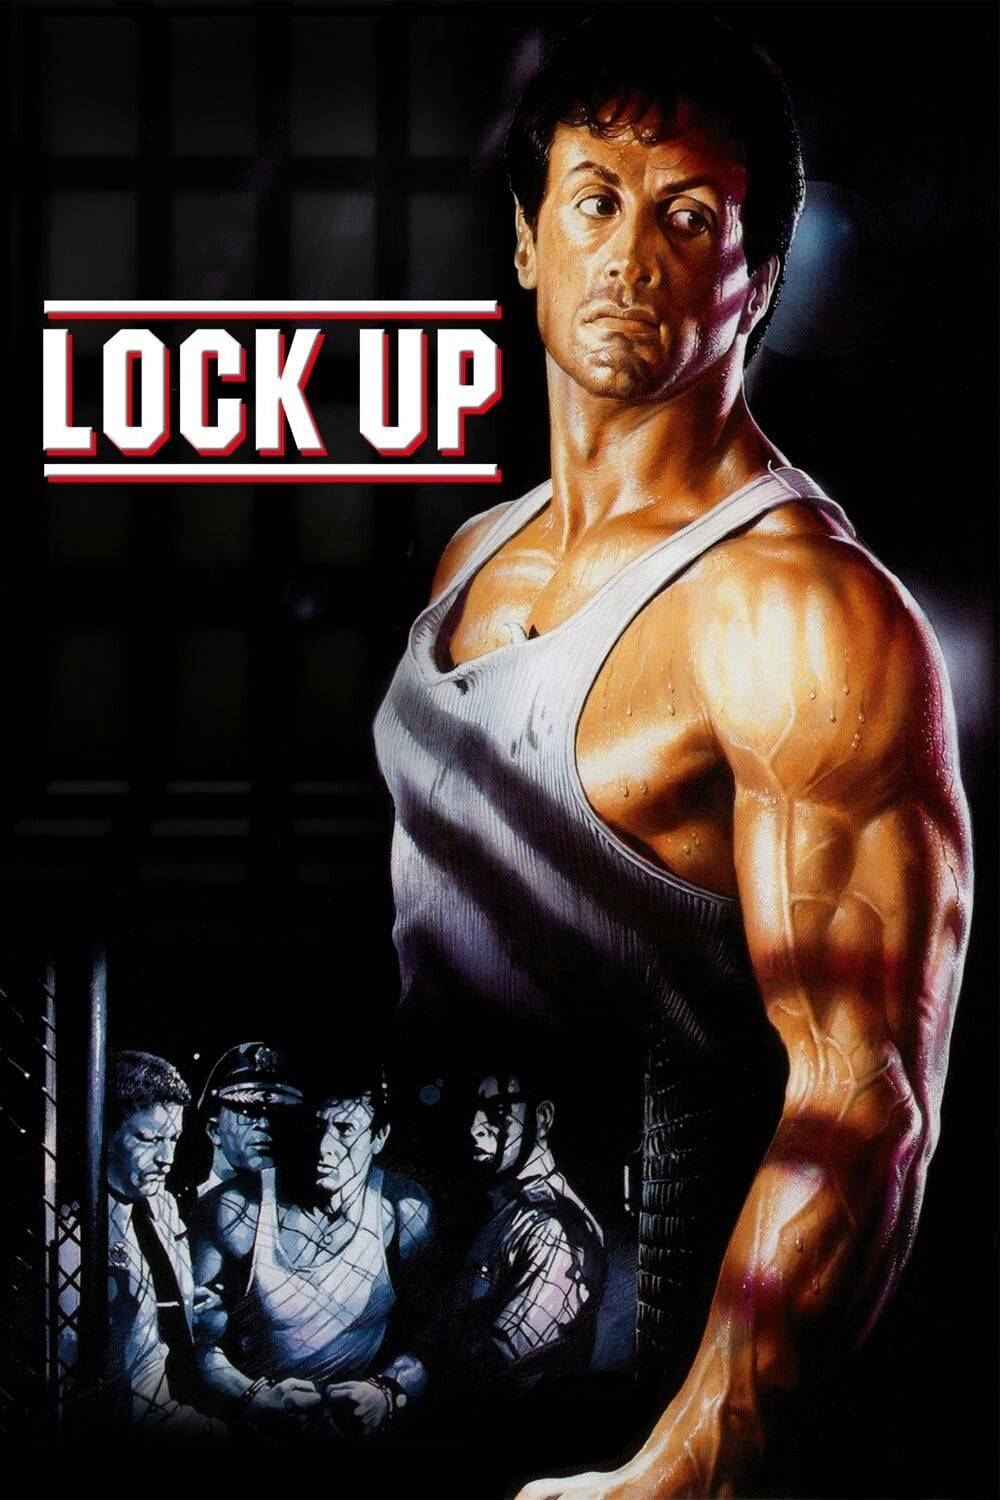 Lock Up Movie Poster Fantastic Movie Posters Scifi Movie Posters